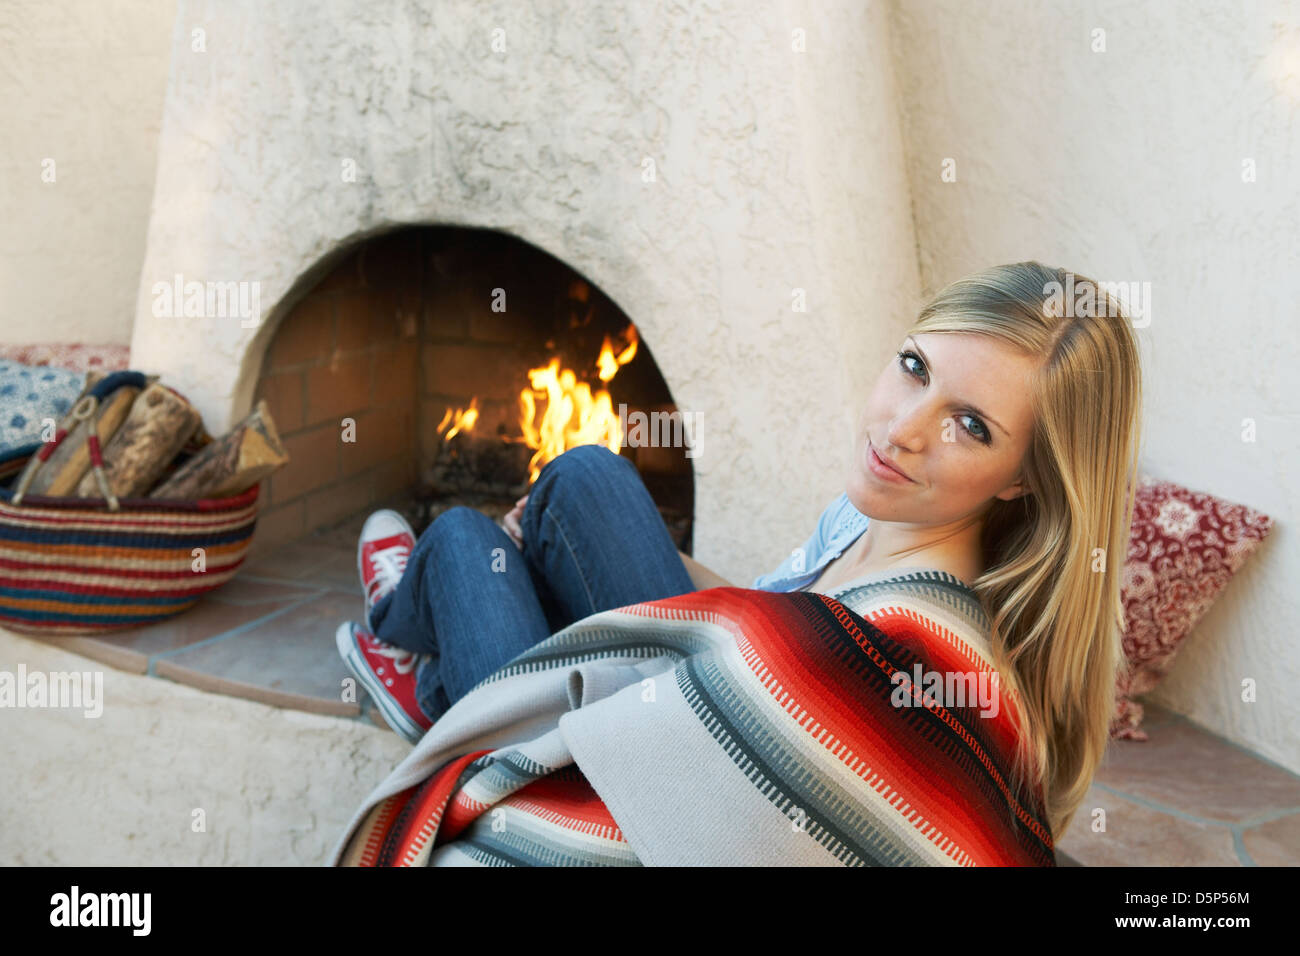 kiva fireplace stock photos u0026 kiva fireplace stock images alamy